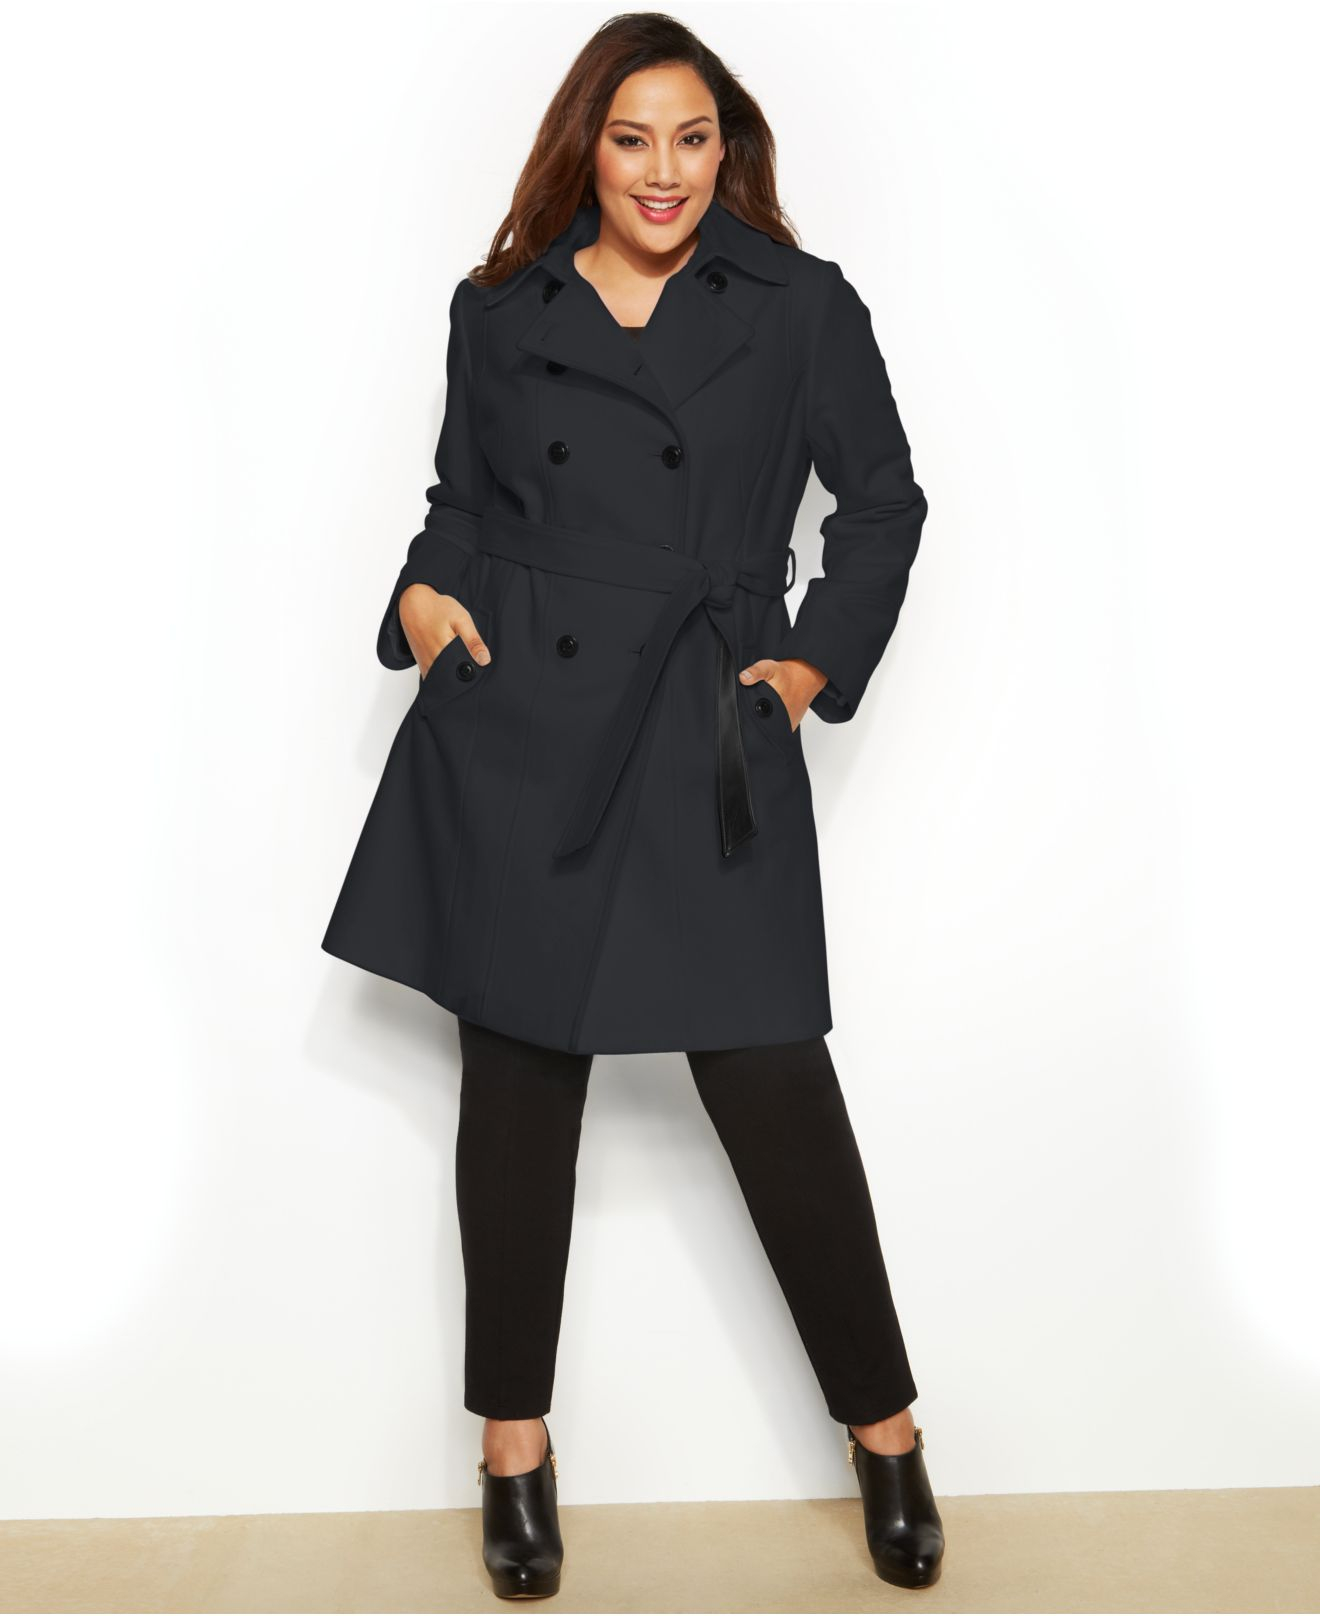 Plus size trench coat - results from brands Unique Bargains, Michael Kors, BGSD, products like Women's Totes Belted Spring Trench Coat, Pink, Size S, Women's White Mark Puffer Coat Red Coat (Large) , Ralph Lauren Plus Size Hooded Trench Coat - Cranberry 3X, Outerwear.